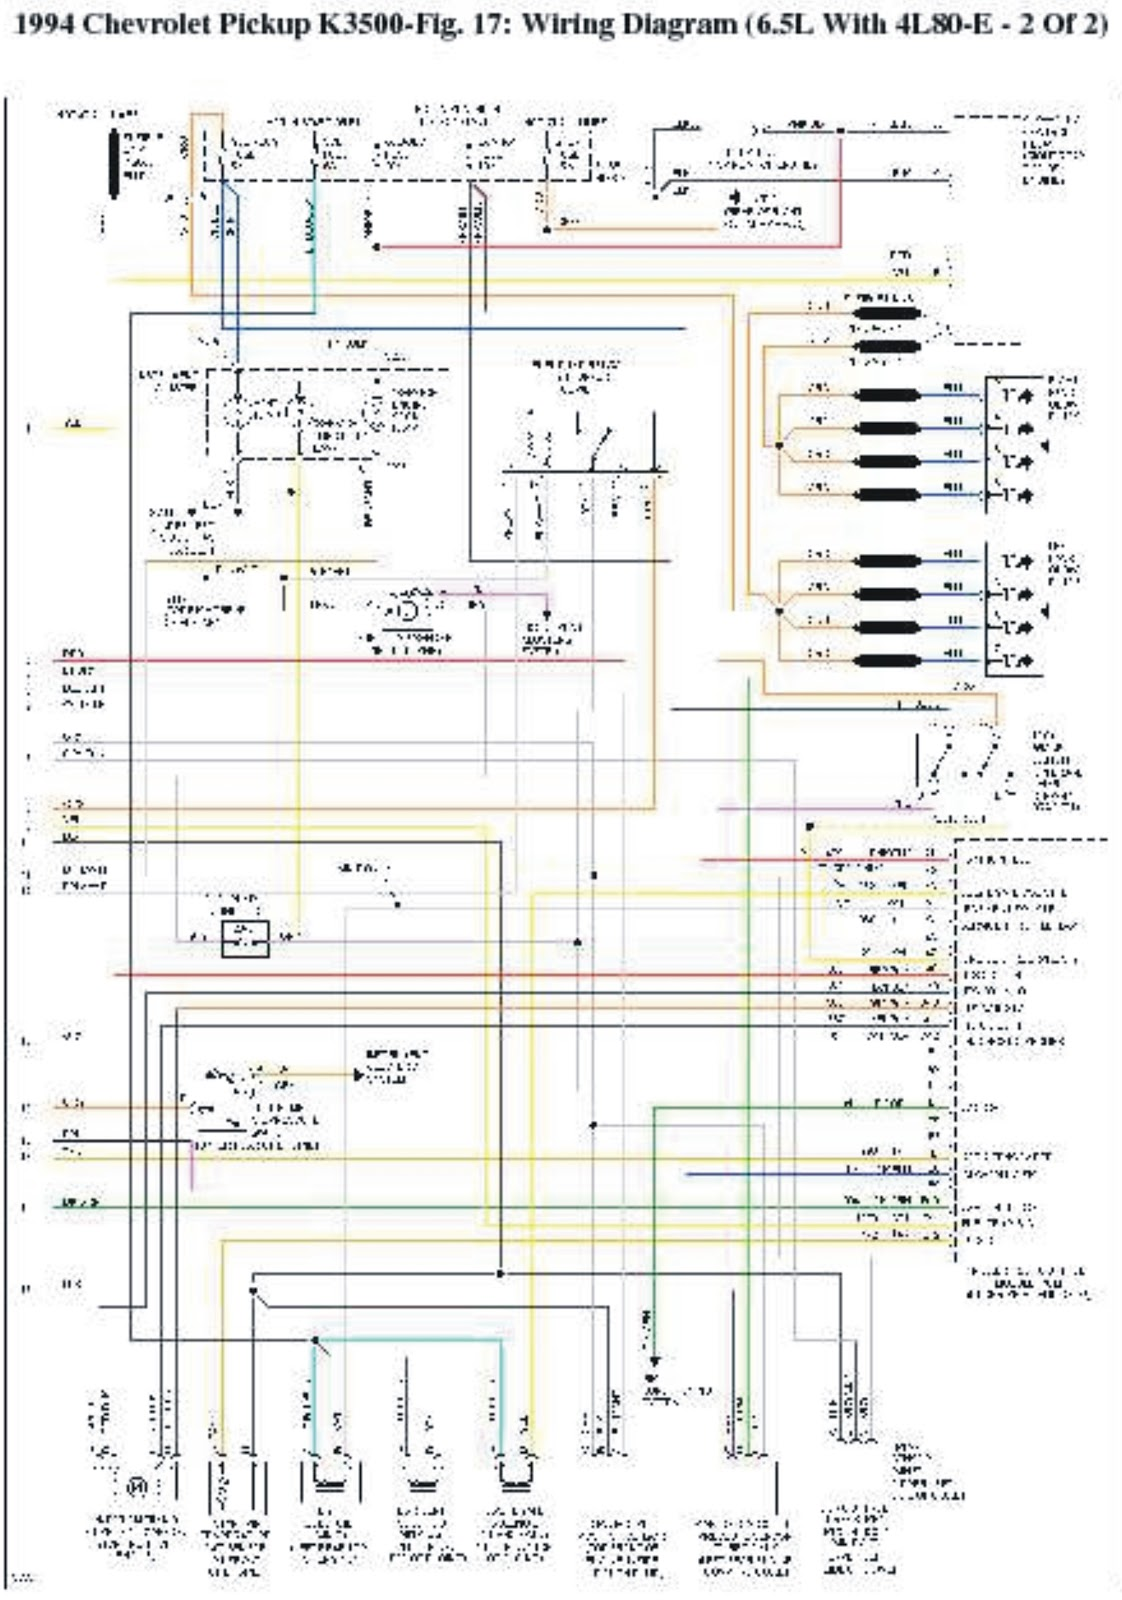 1990 gmc sierra 1500 wiring diagram 1990 gmc sierra 1500 1990 gmc sierra fuse  box diagram